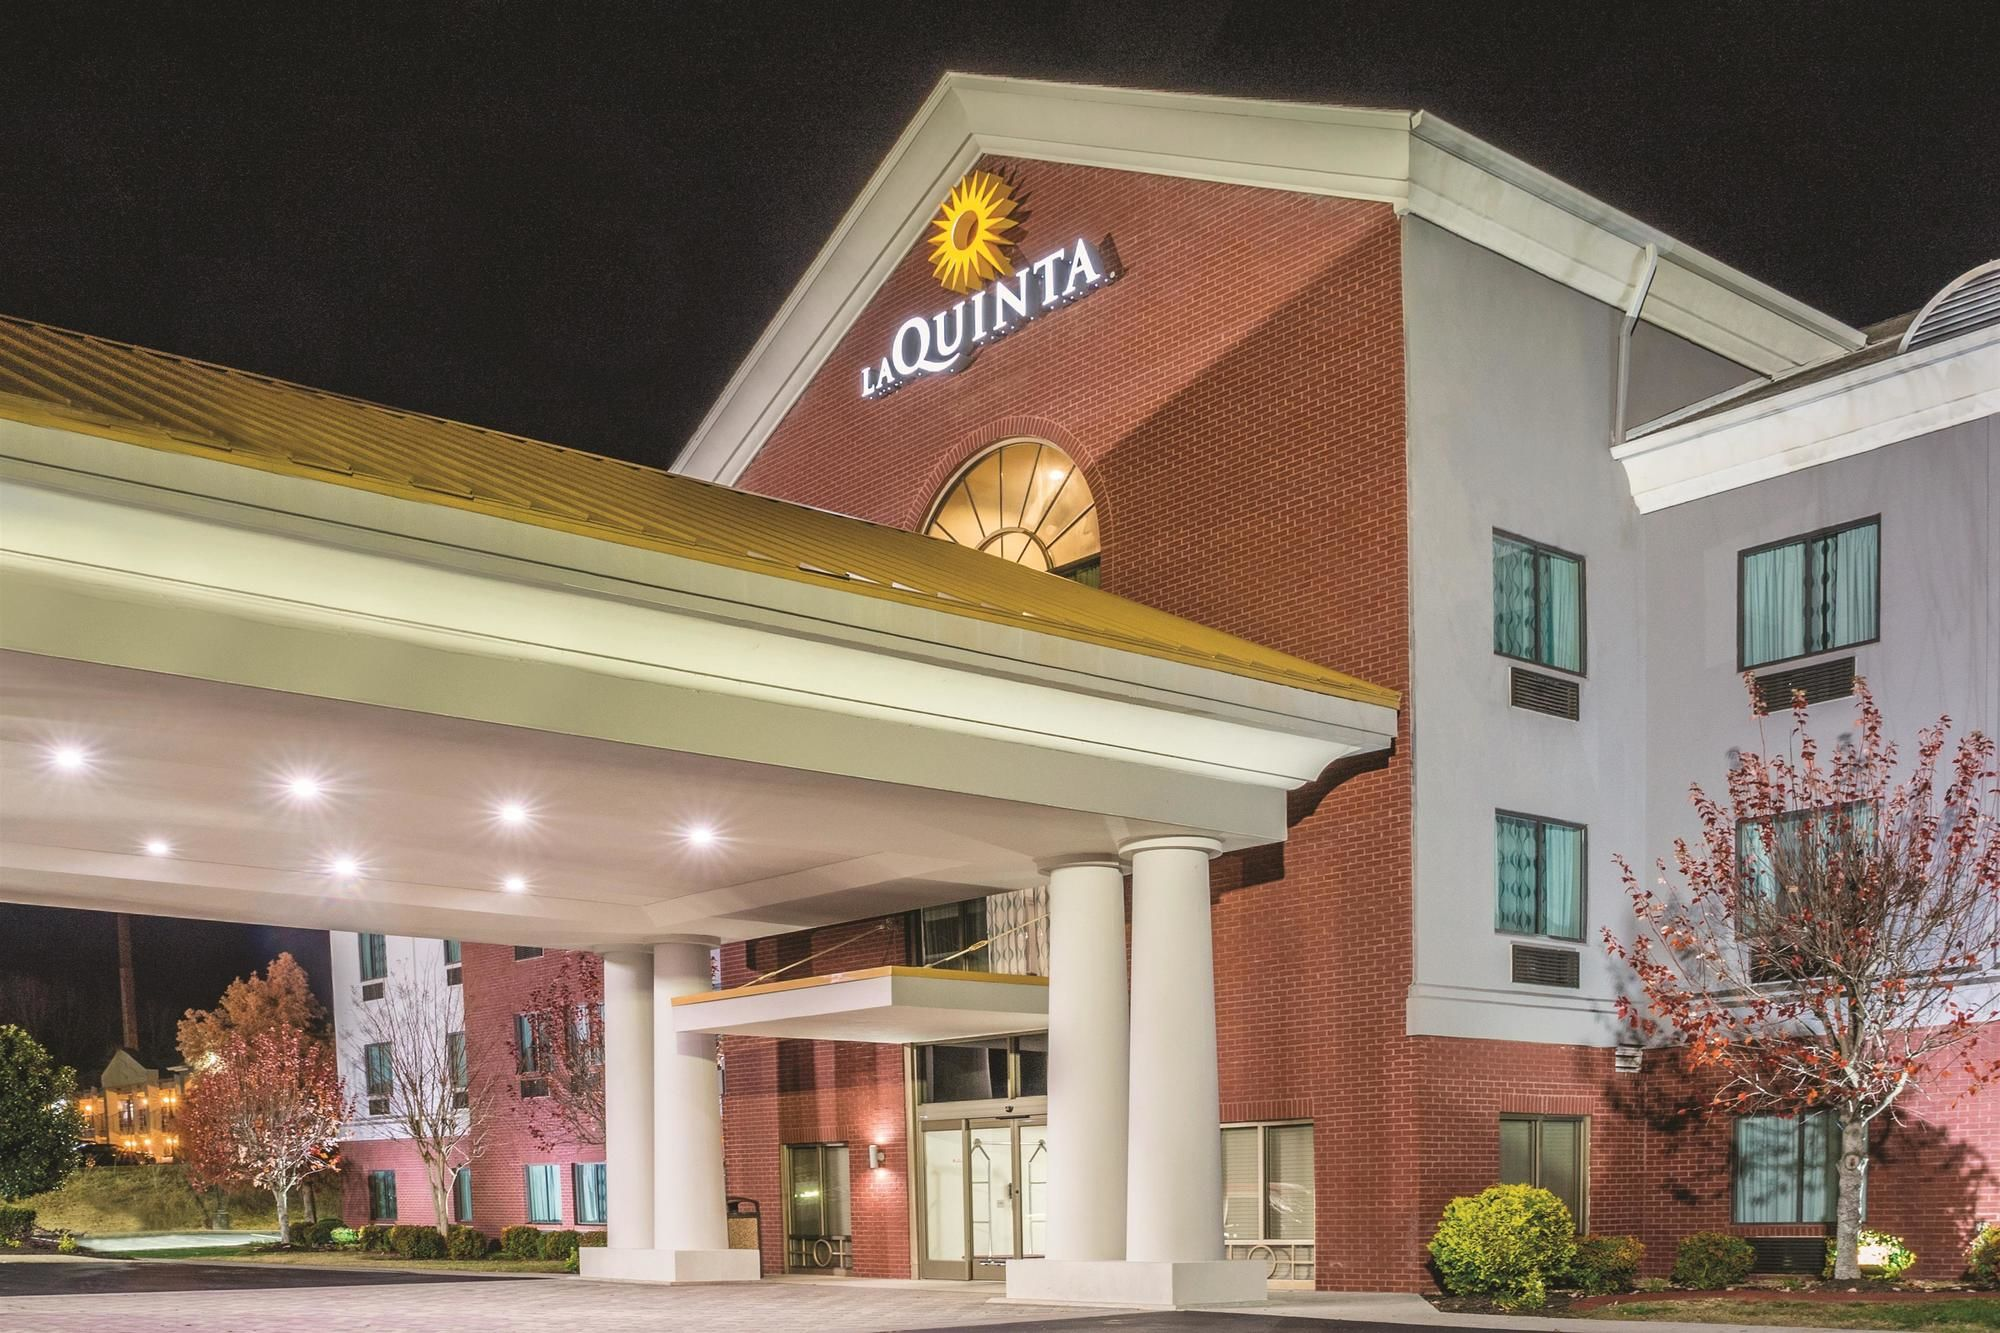 LaQuinta Inn & Suites in Loudon, TN